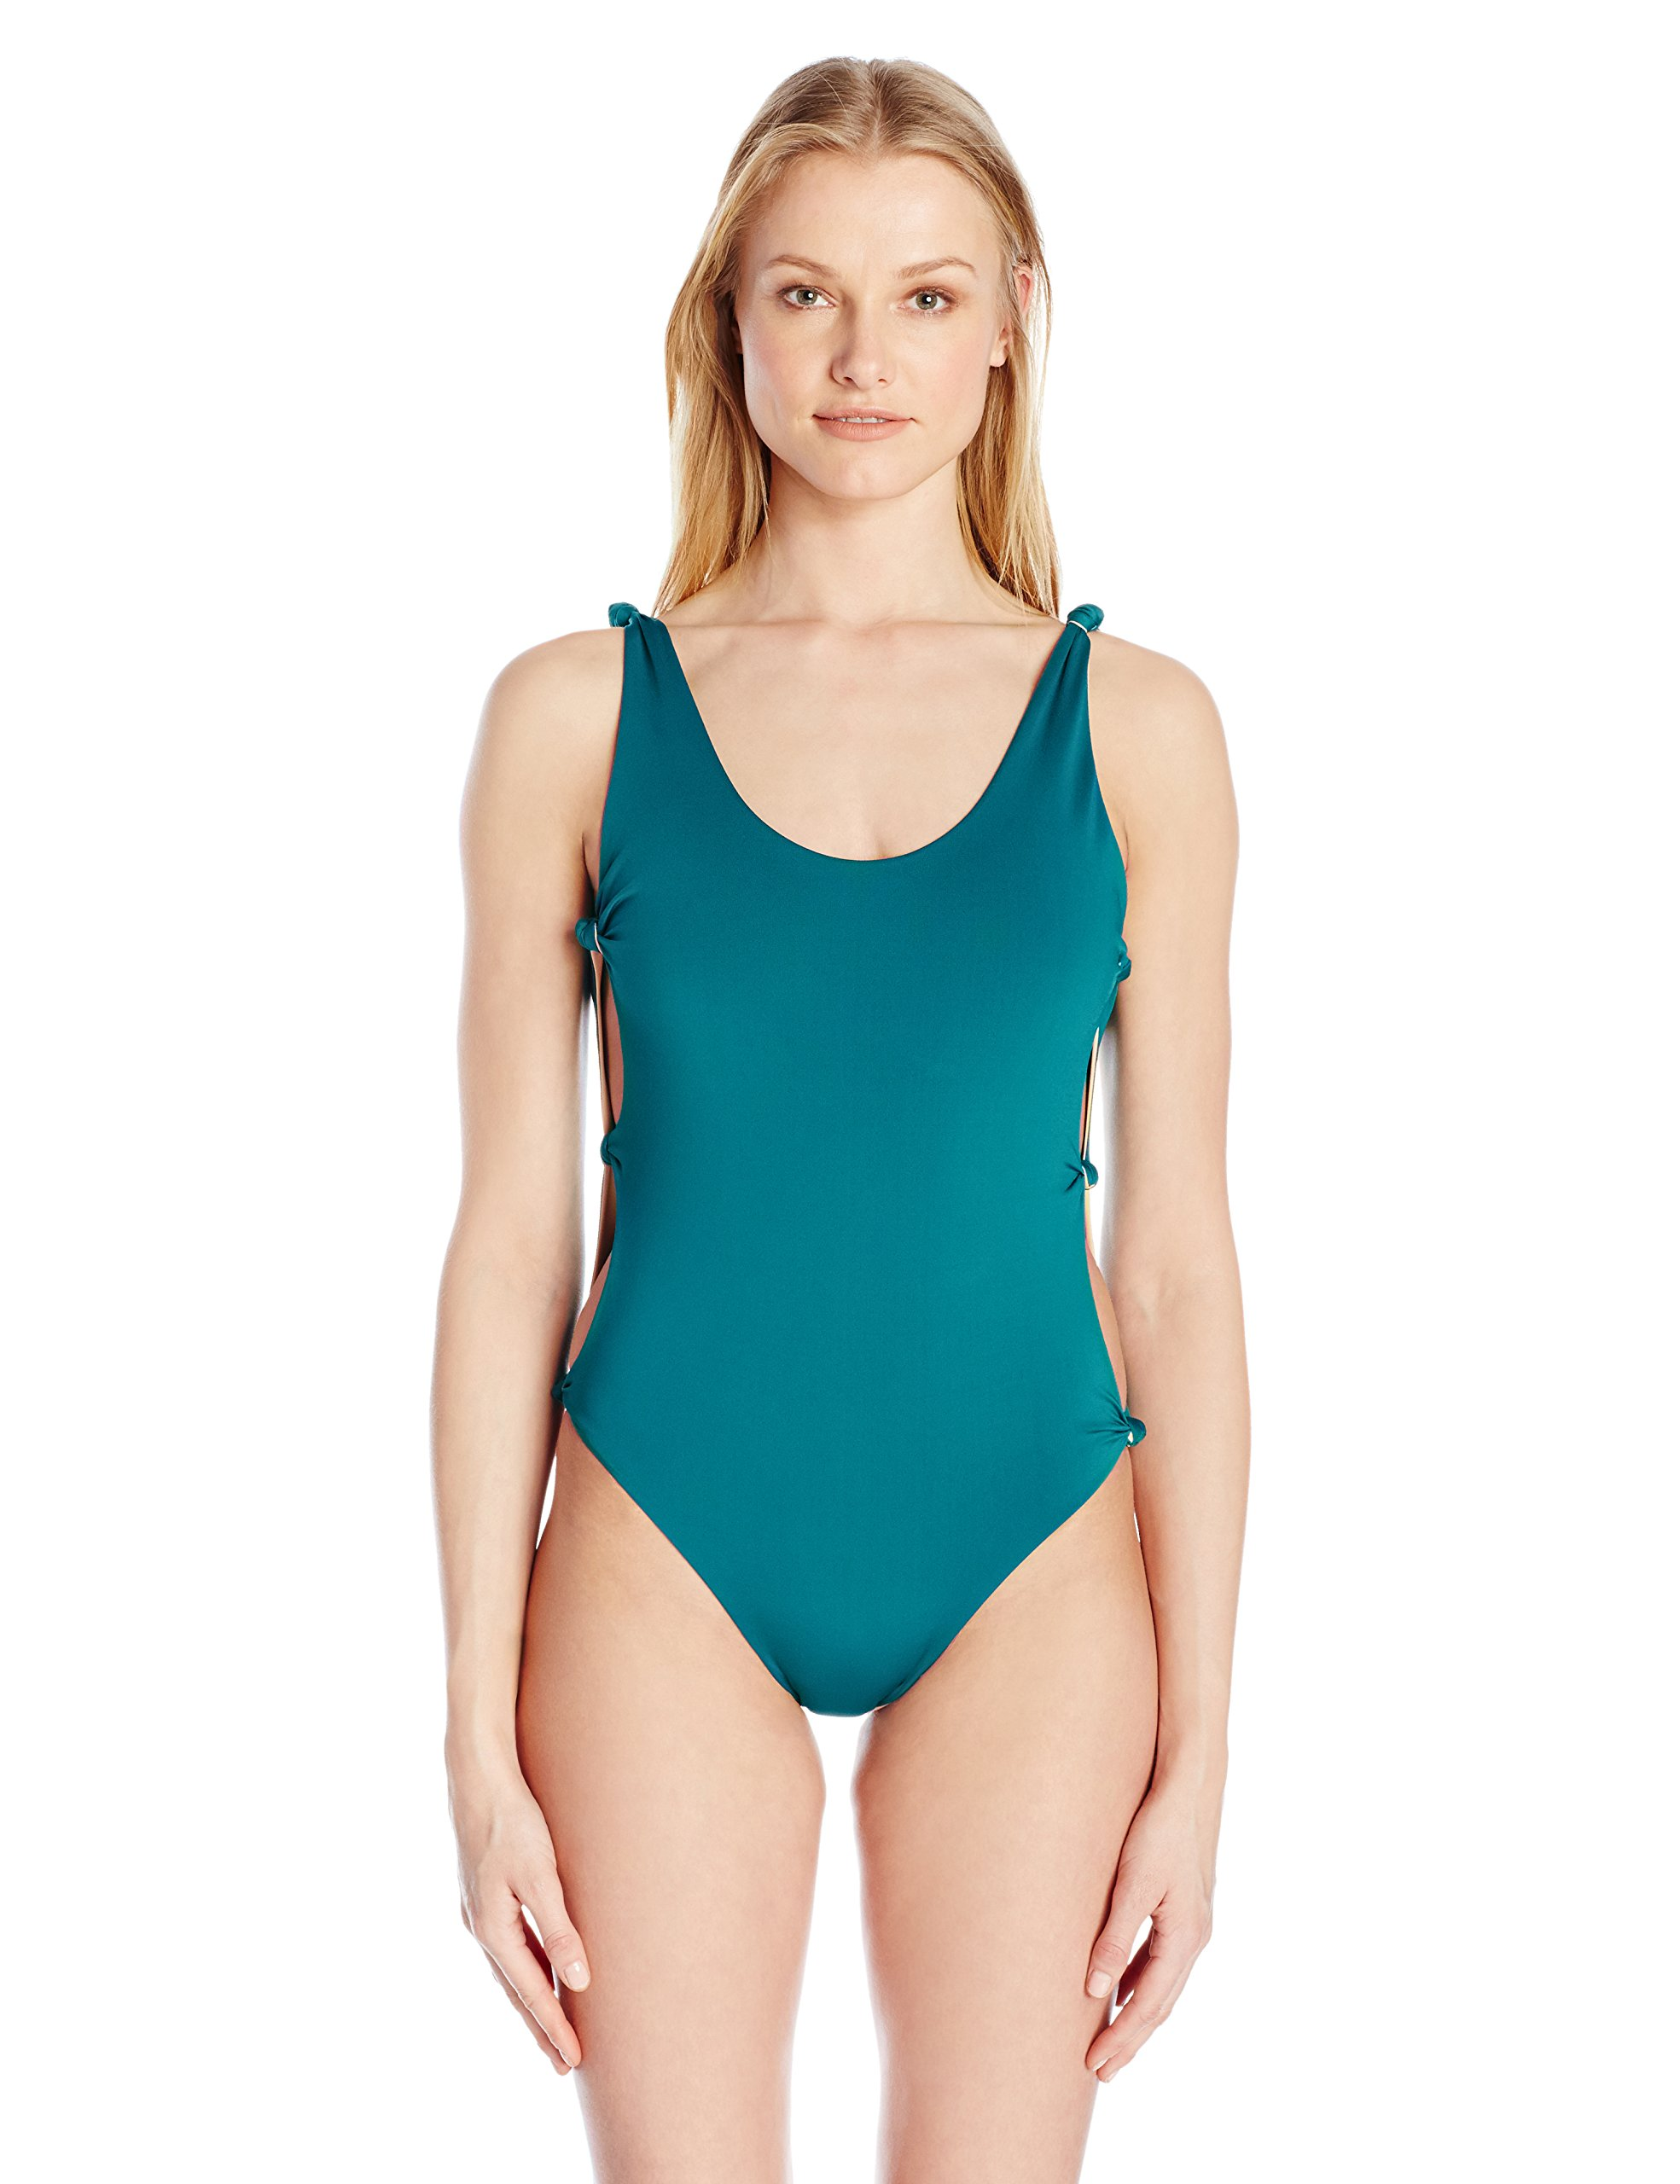 Red Carter Women's Indian Summer Reversible Solid Open-Side One Piece Swimsuit, Lagoon/Apricot, M